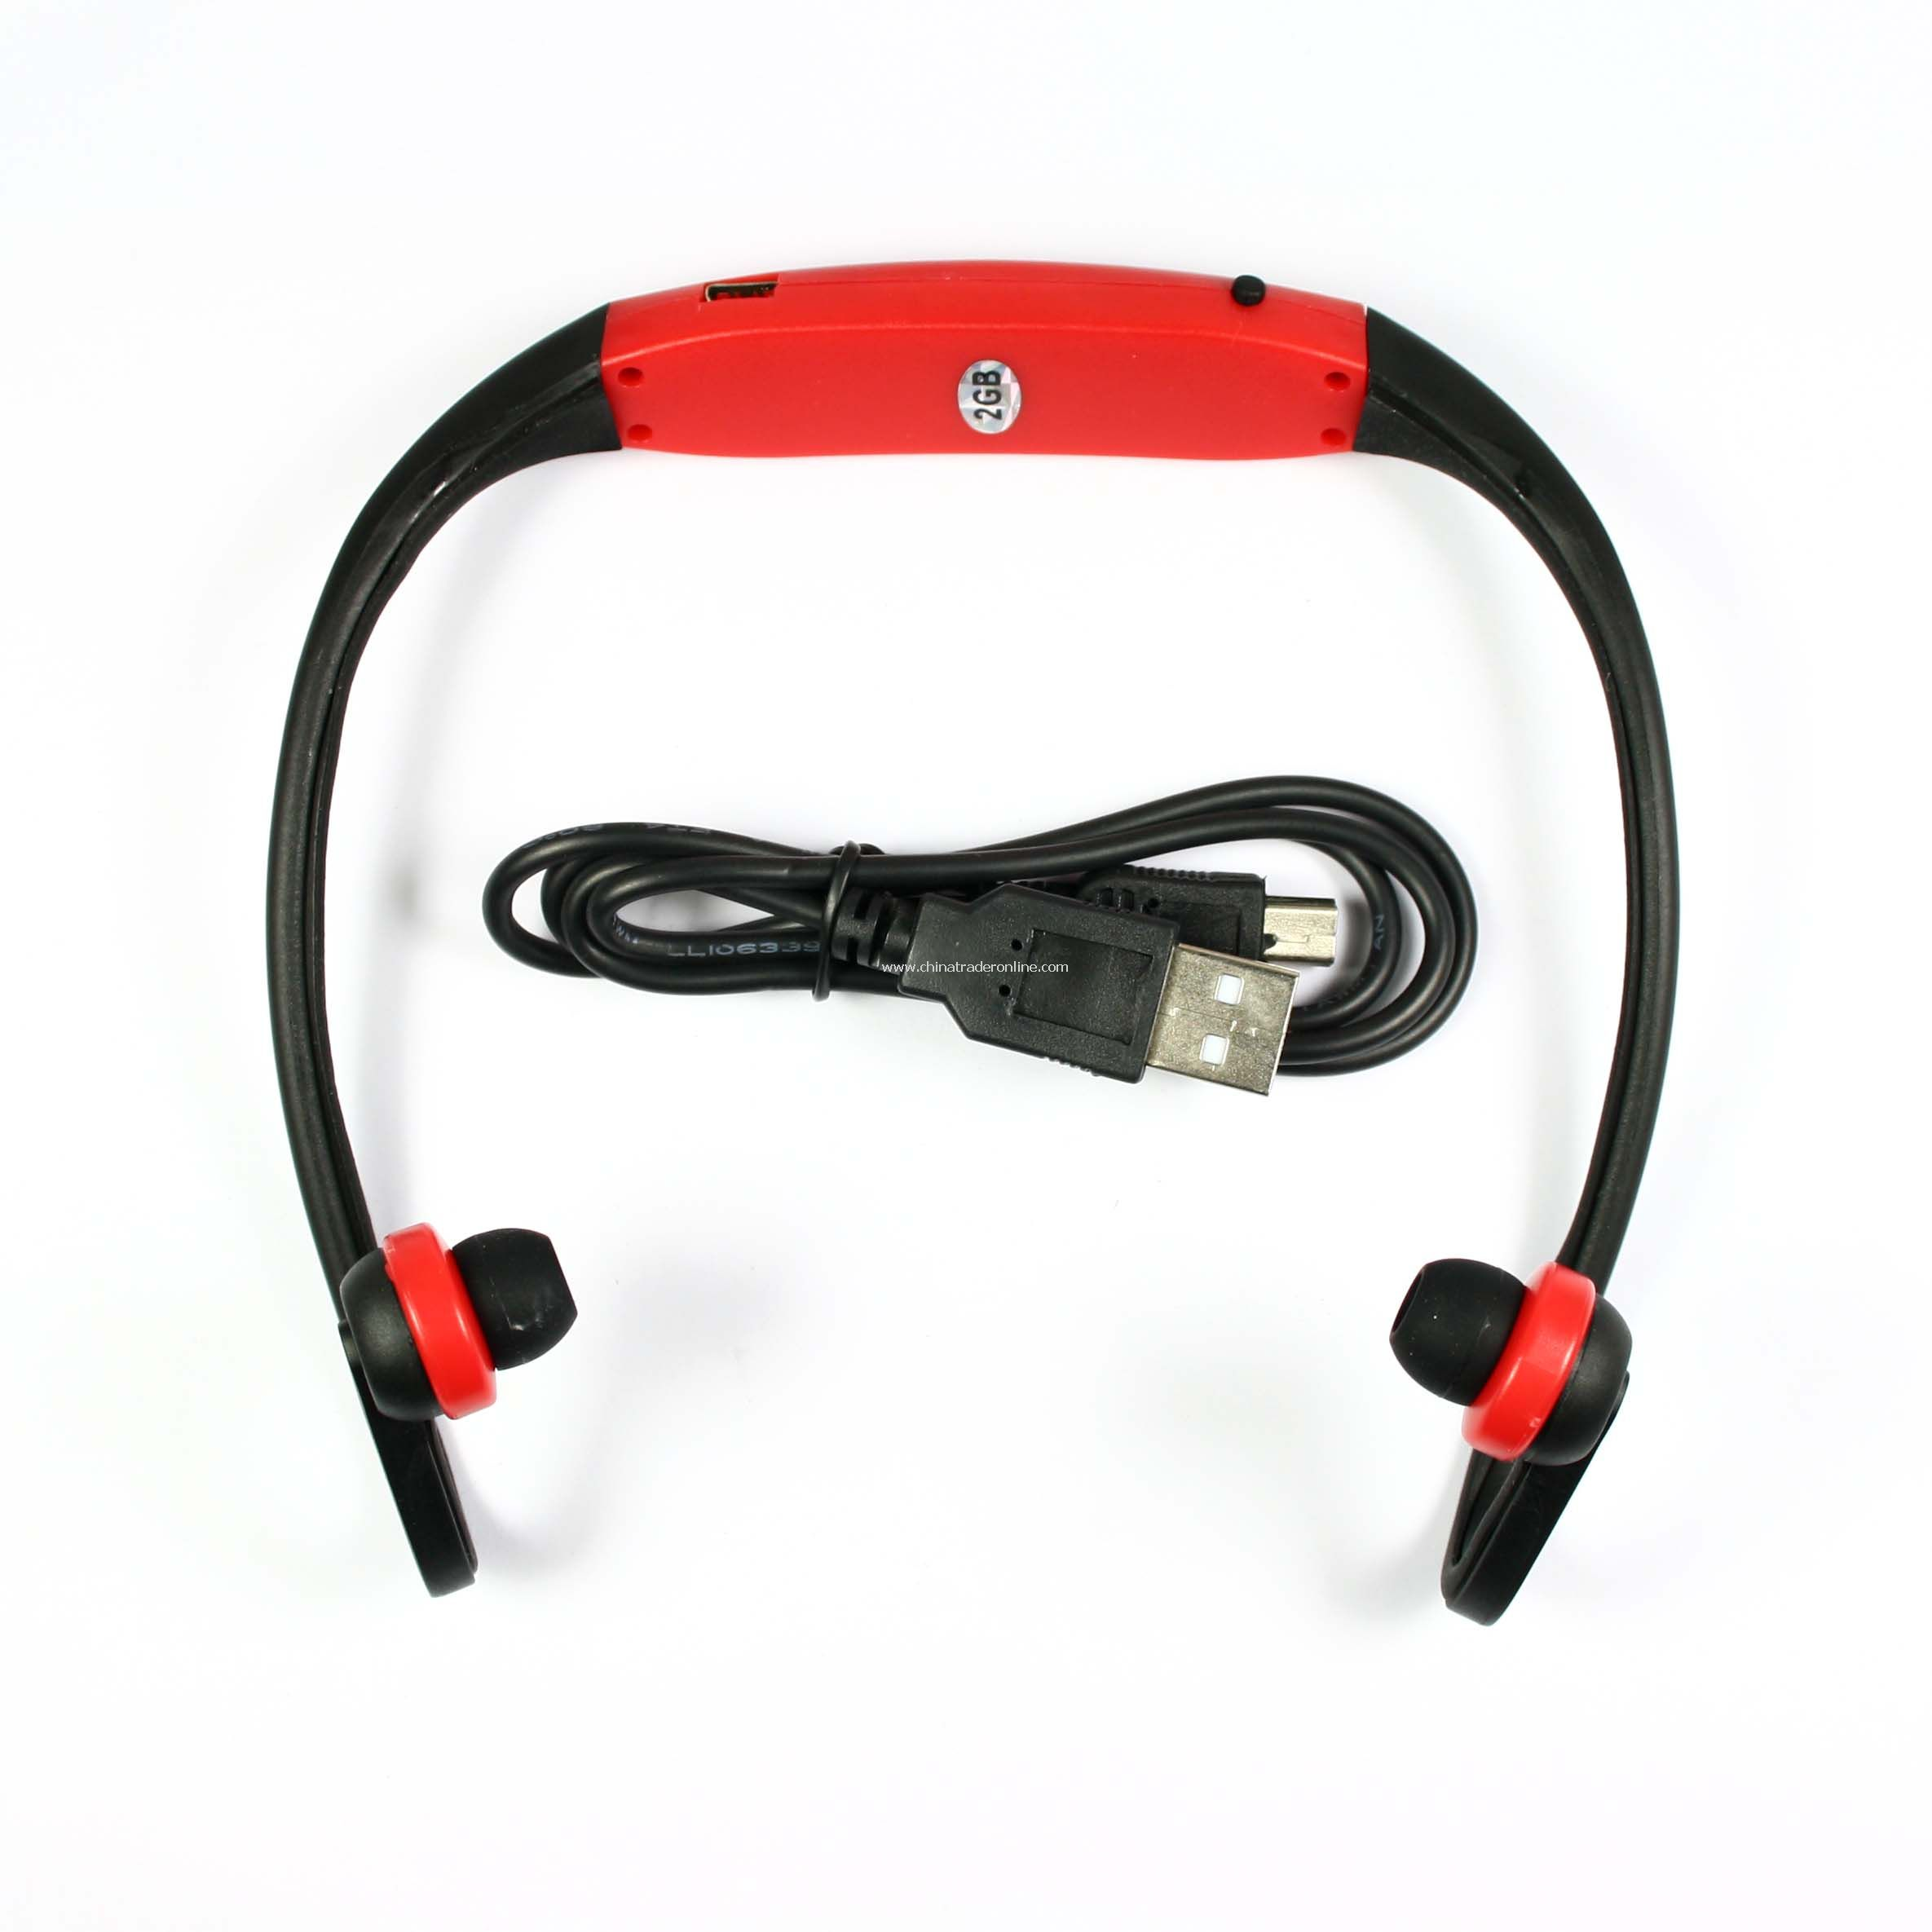 Headset Handsfree MP3 Player 2GB Red